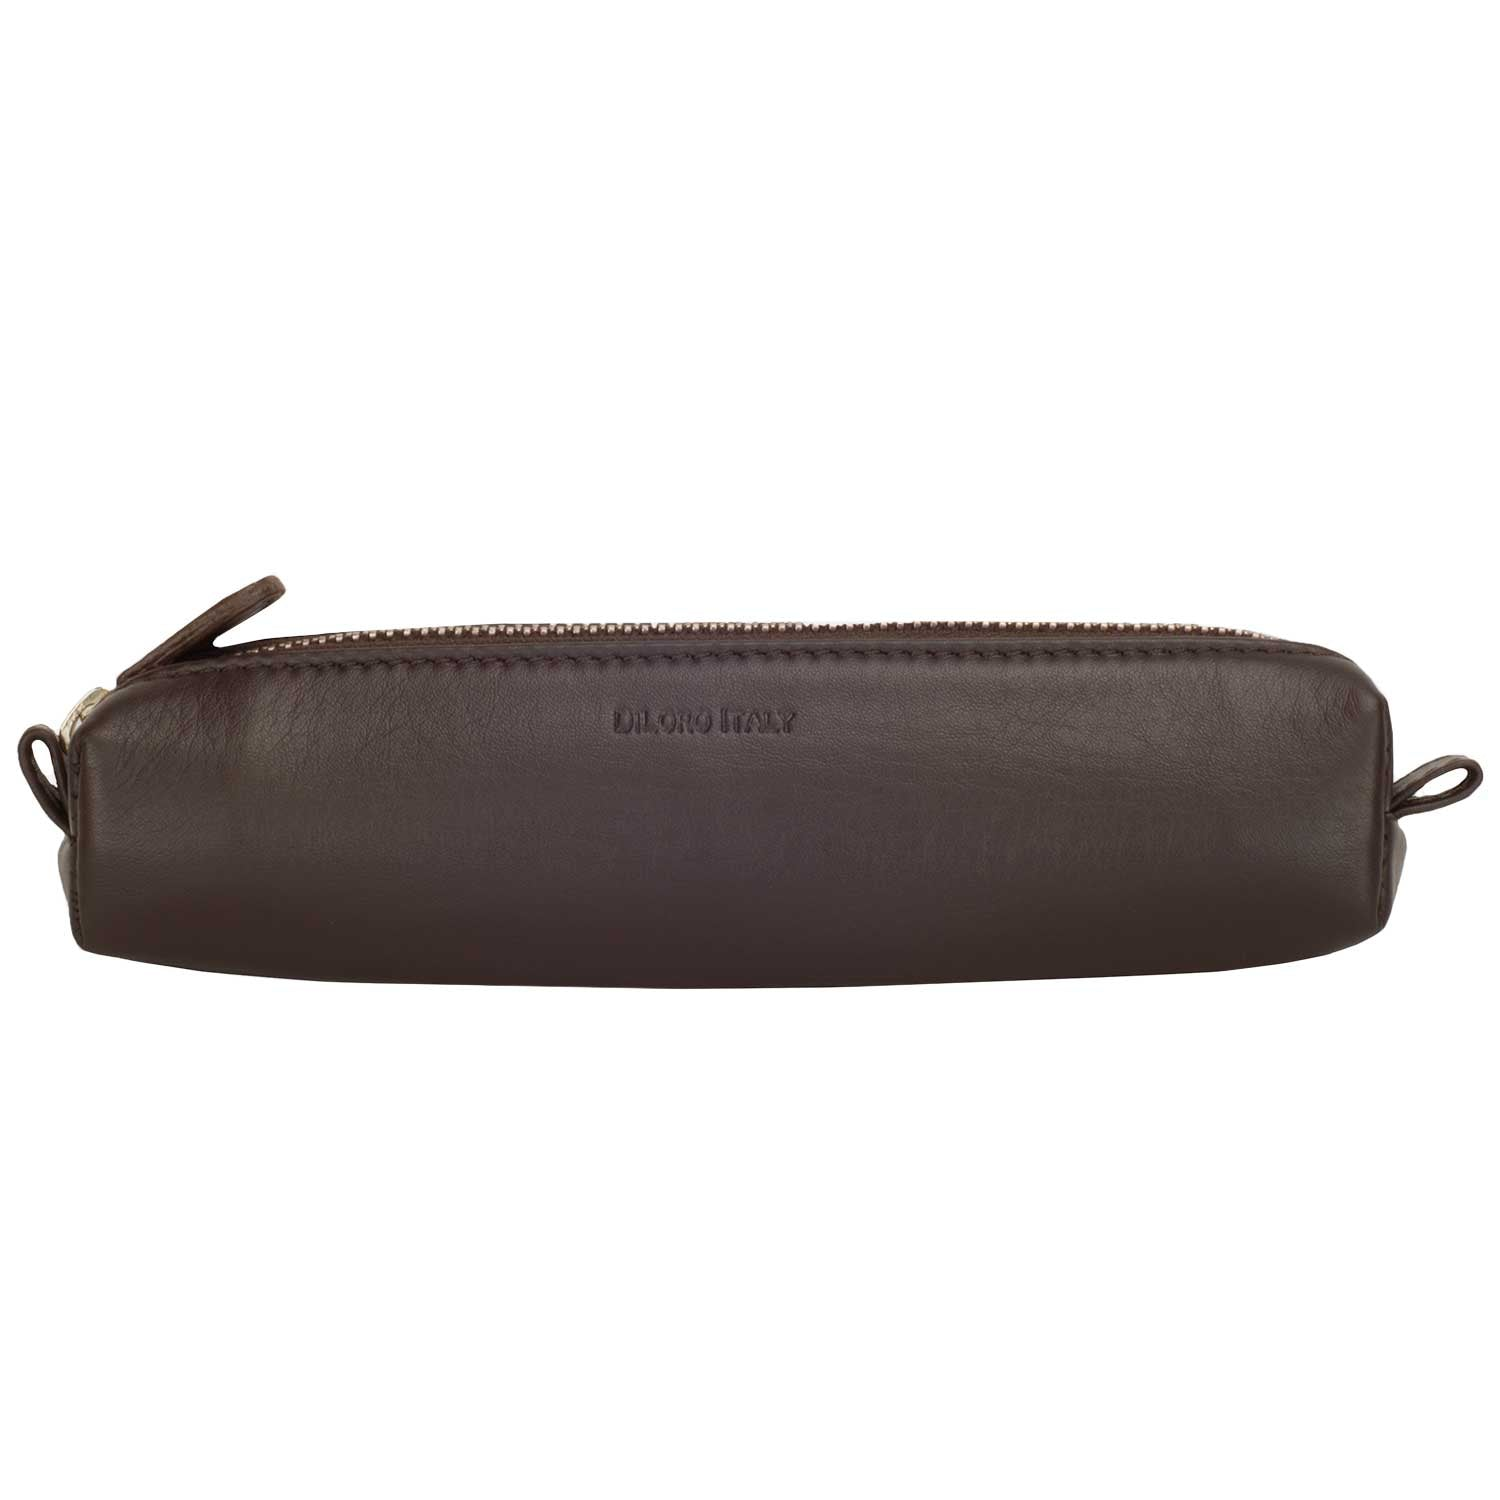 Multi-Purpose Zippered Leather Pen Pencil Case Pouch in Various Colors - Dark Brown